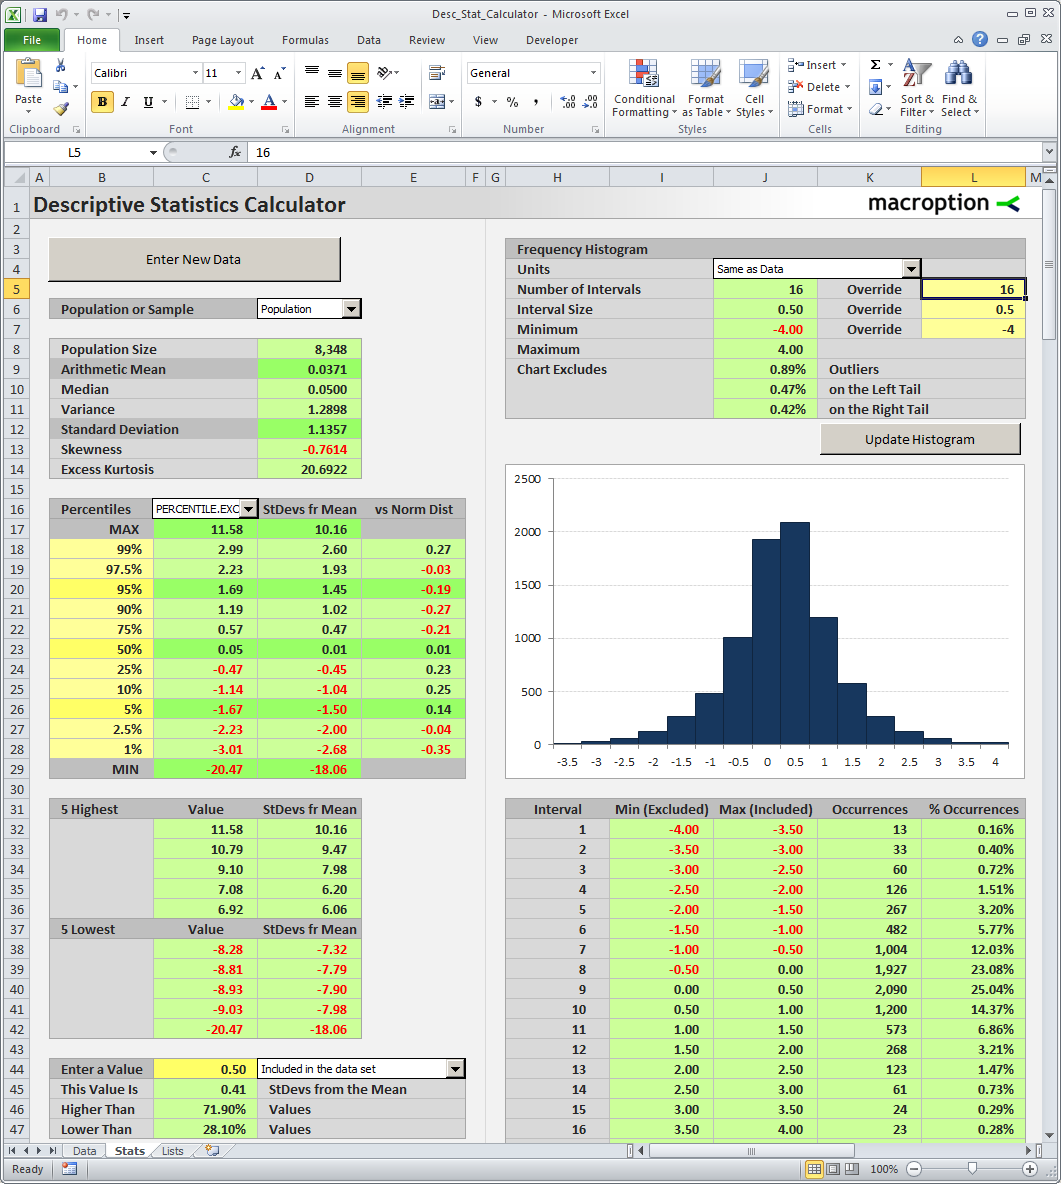 Descriptive Statistics Calculator - the main sheet